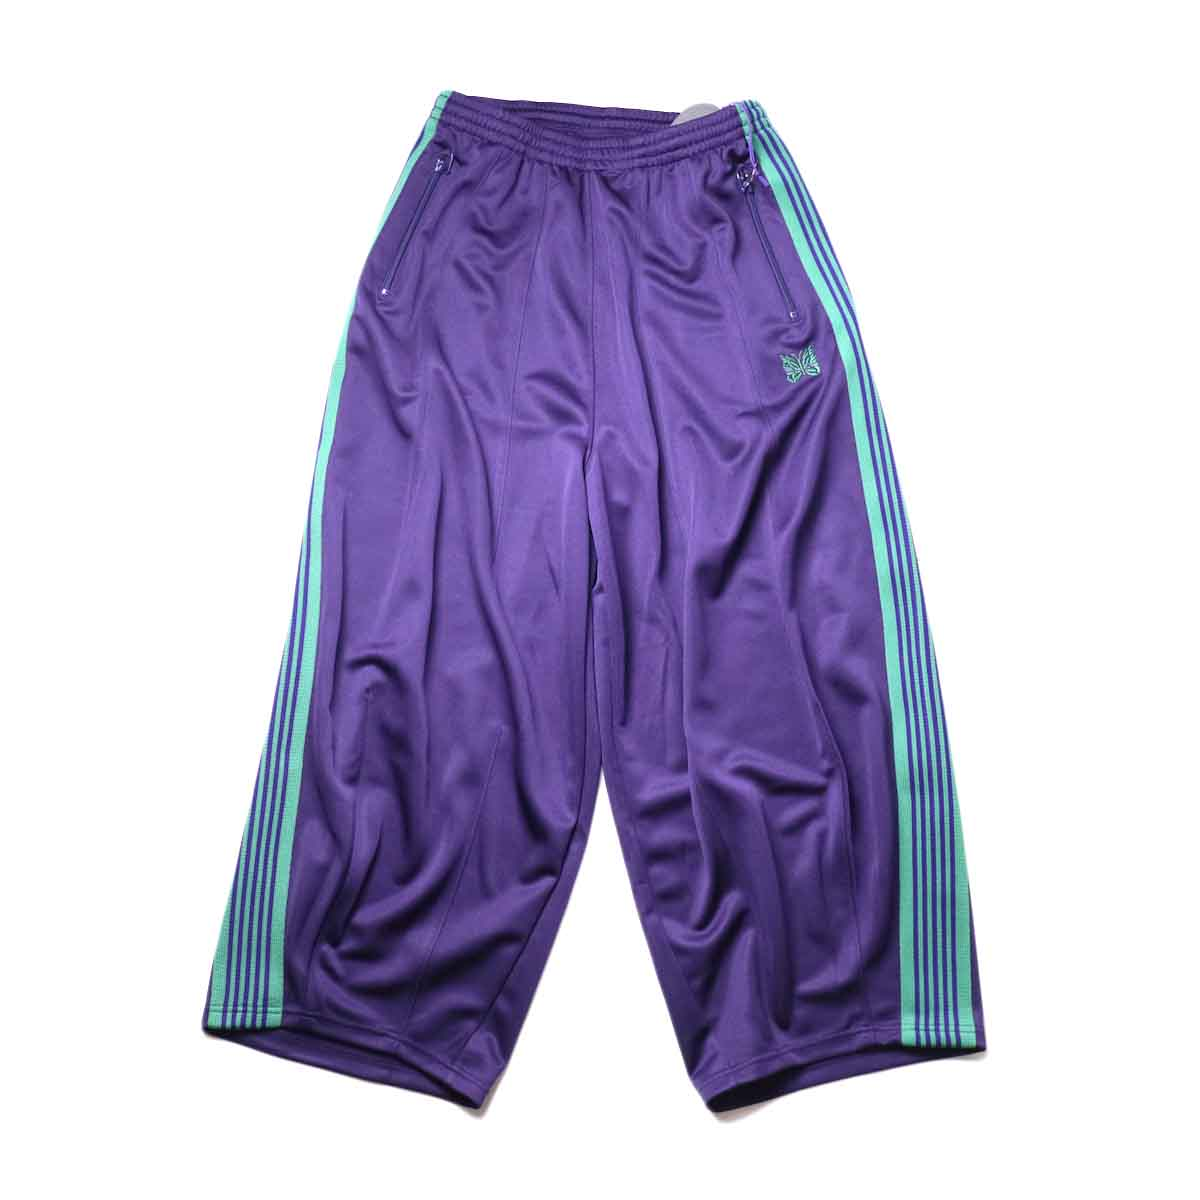 Needles / H.D. TRACK PANT - POLY SMOOTH (Eggplant)